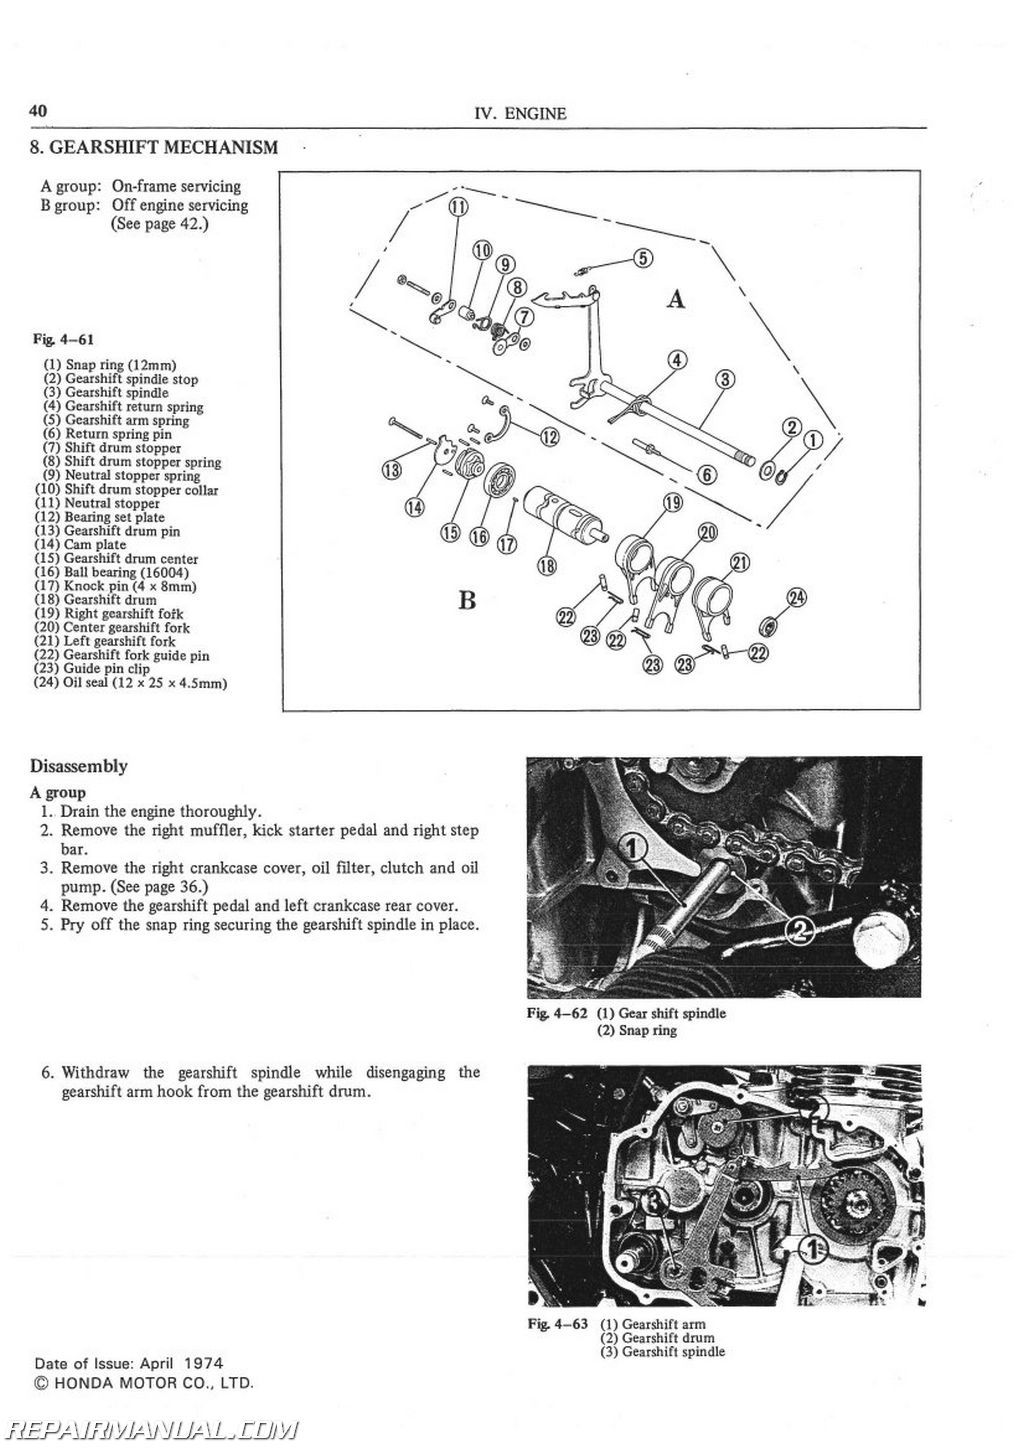 Honda Cb500t Service Manual